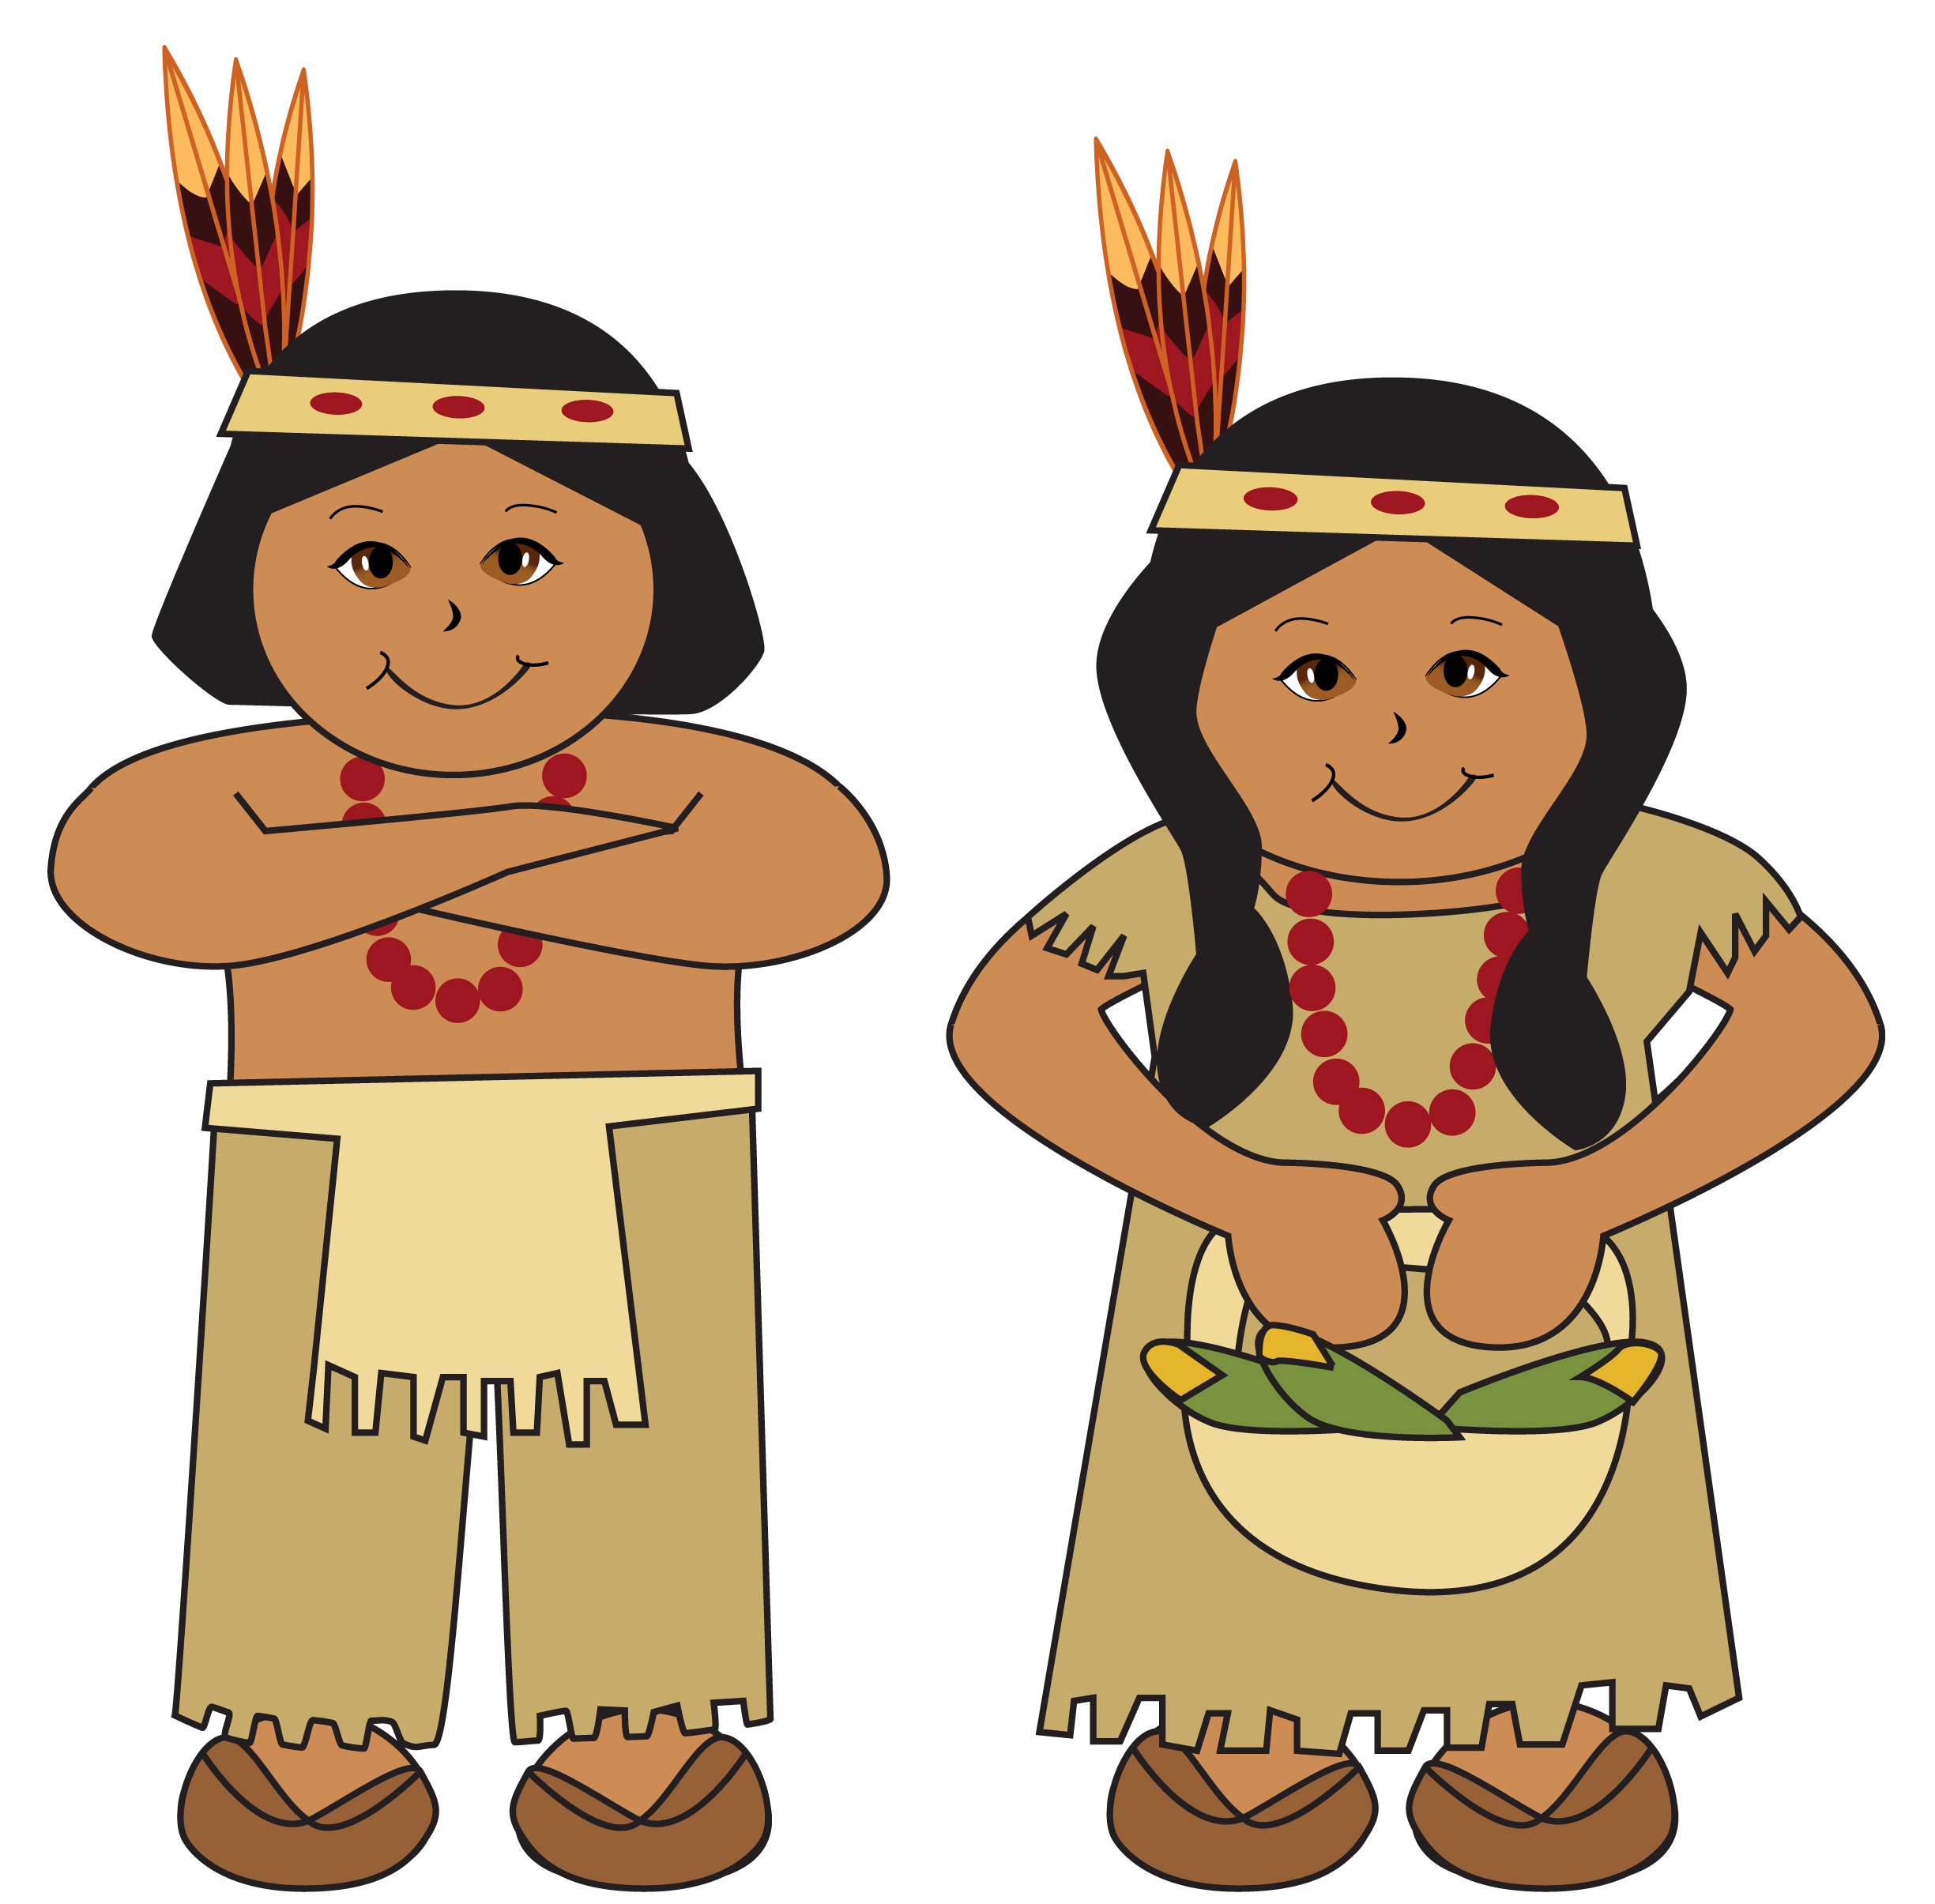 native americans clipart picture indian pinterest native rh pinterest com native american clipart free native american clip art free printable